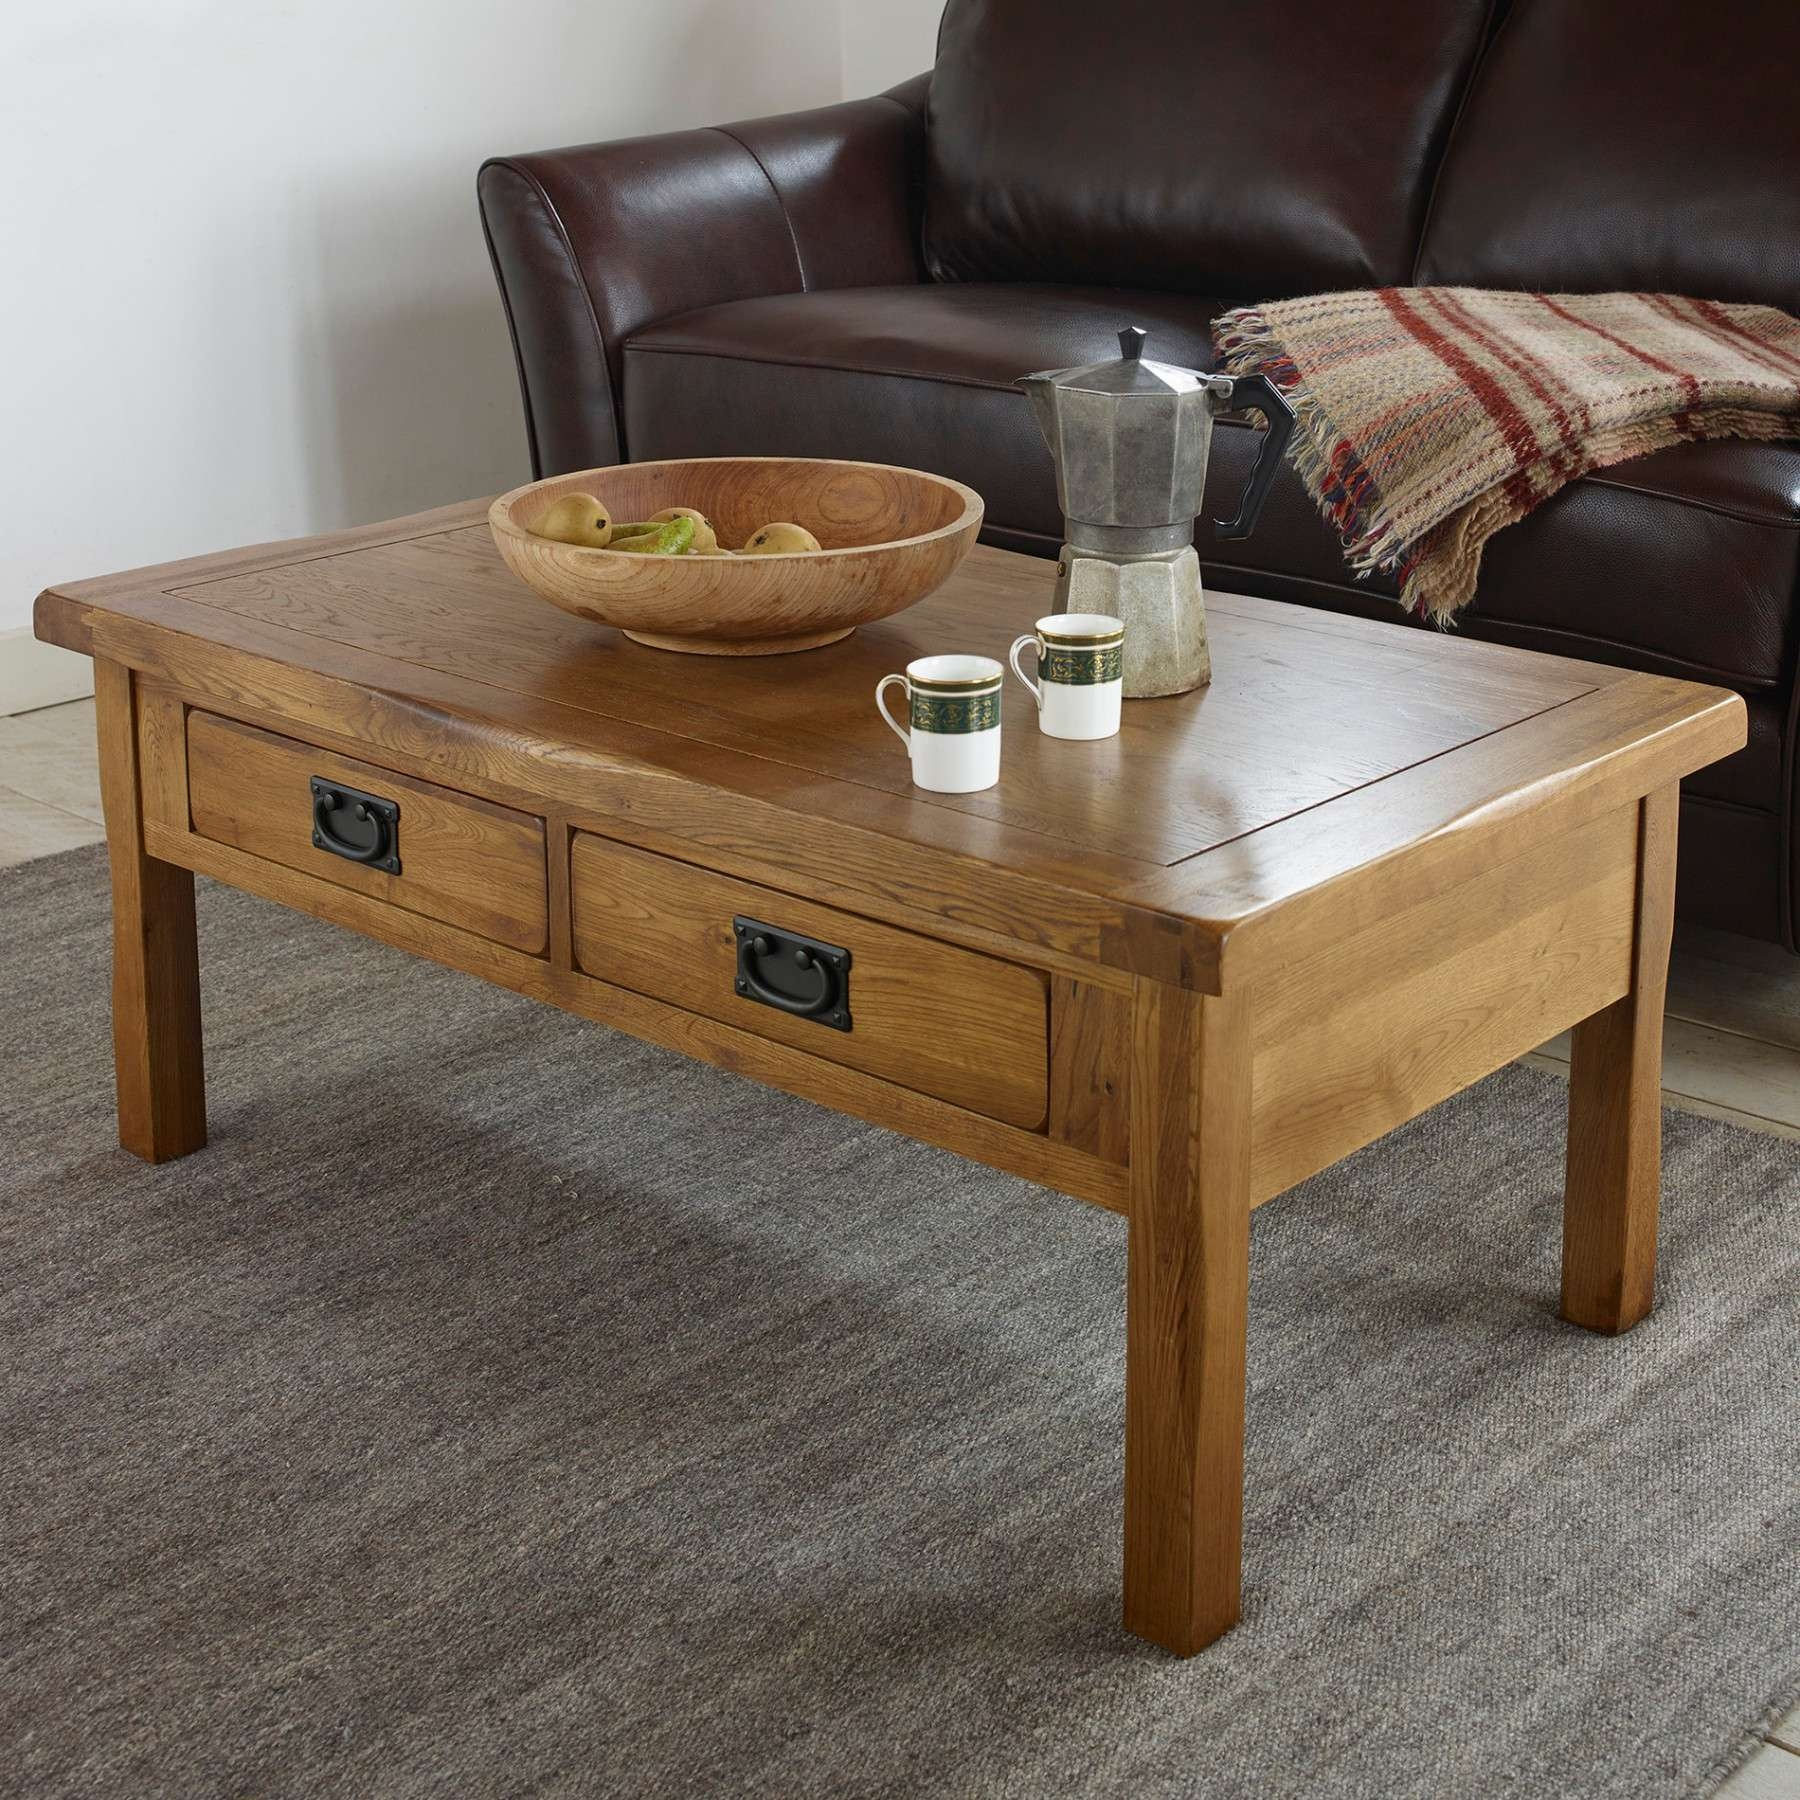 Coffee Regarding Latest Oak Coffee Table With Storage (View 18 of 20)